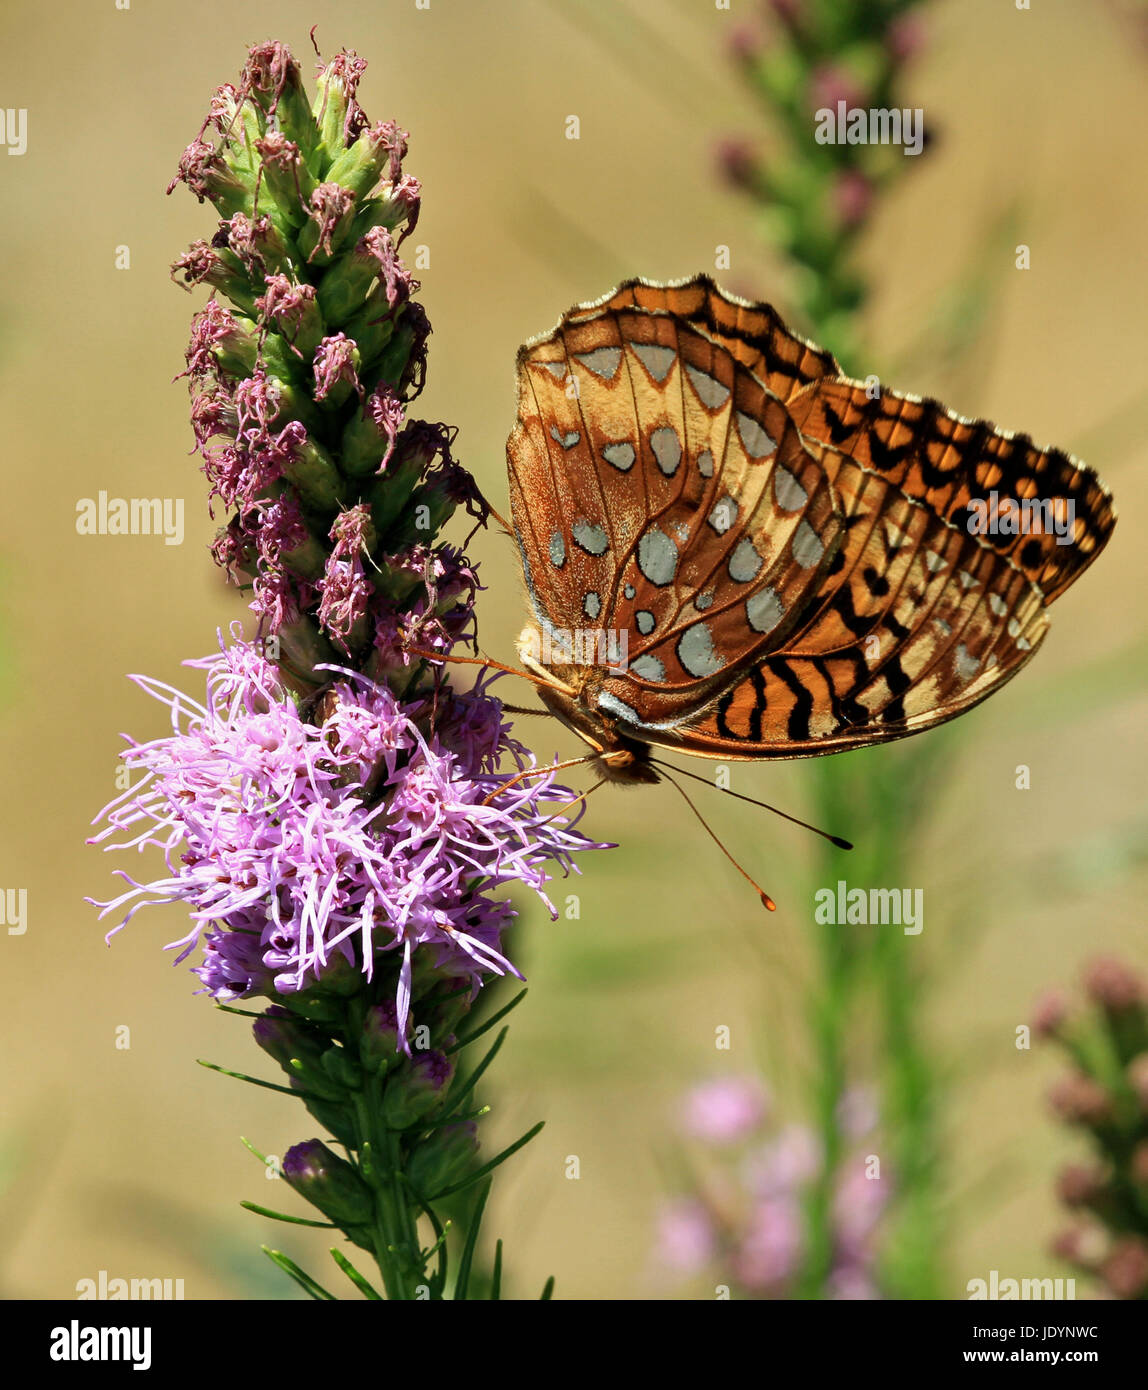 A Great Spangled Fritillary Butterfly (Speyeria cybele) pollinating blazing star (Liatris spicata) in a New England Stock Photo